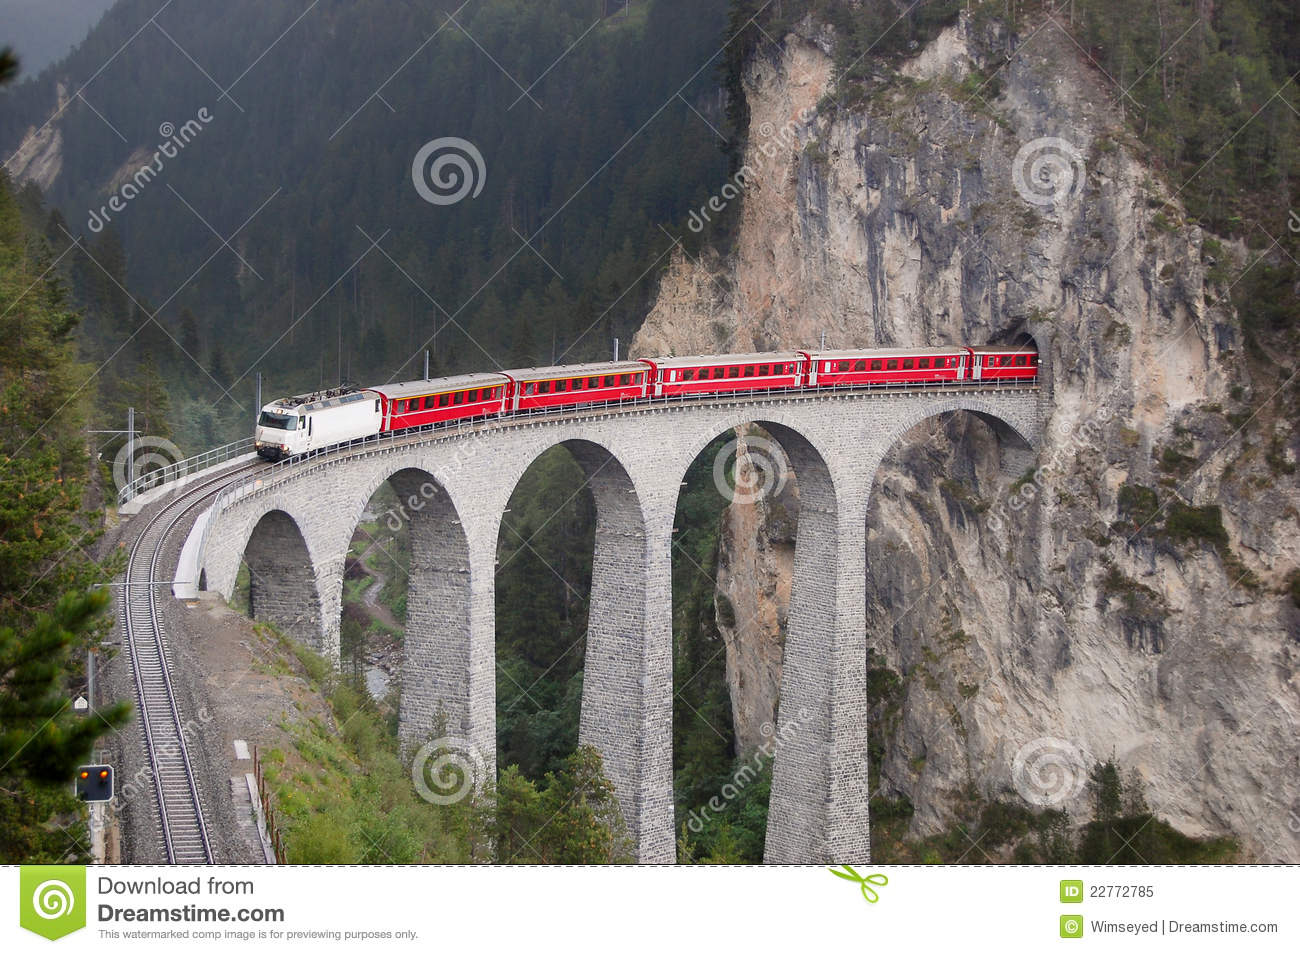 Train on a bridge